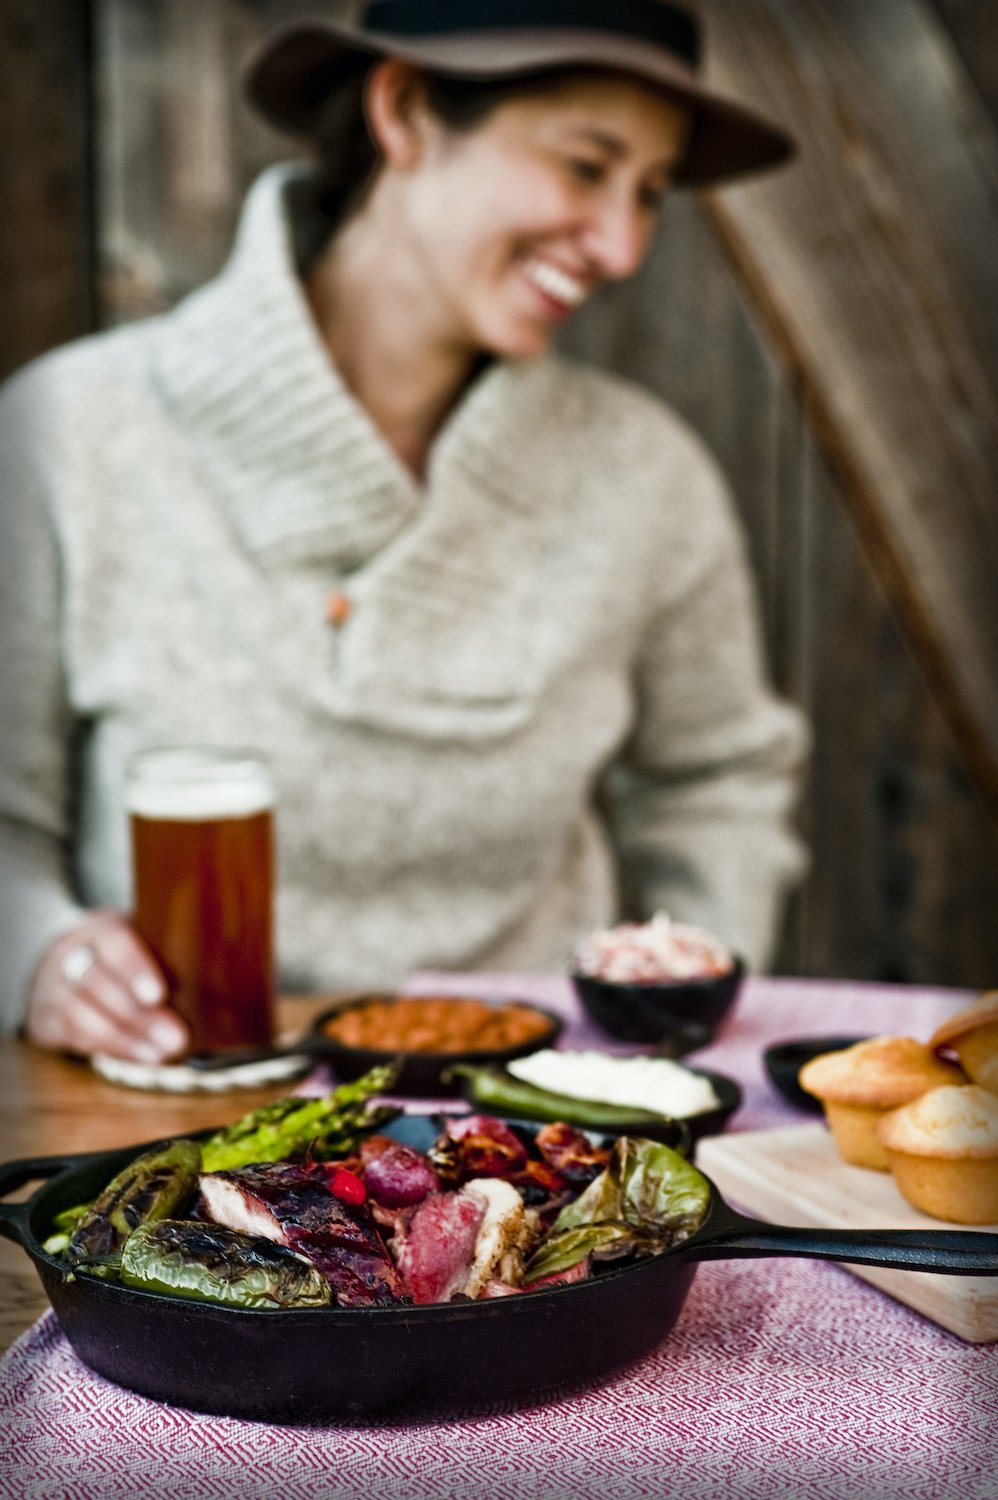 Woman enjoys a local beer and barbecue meal